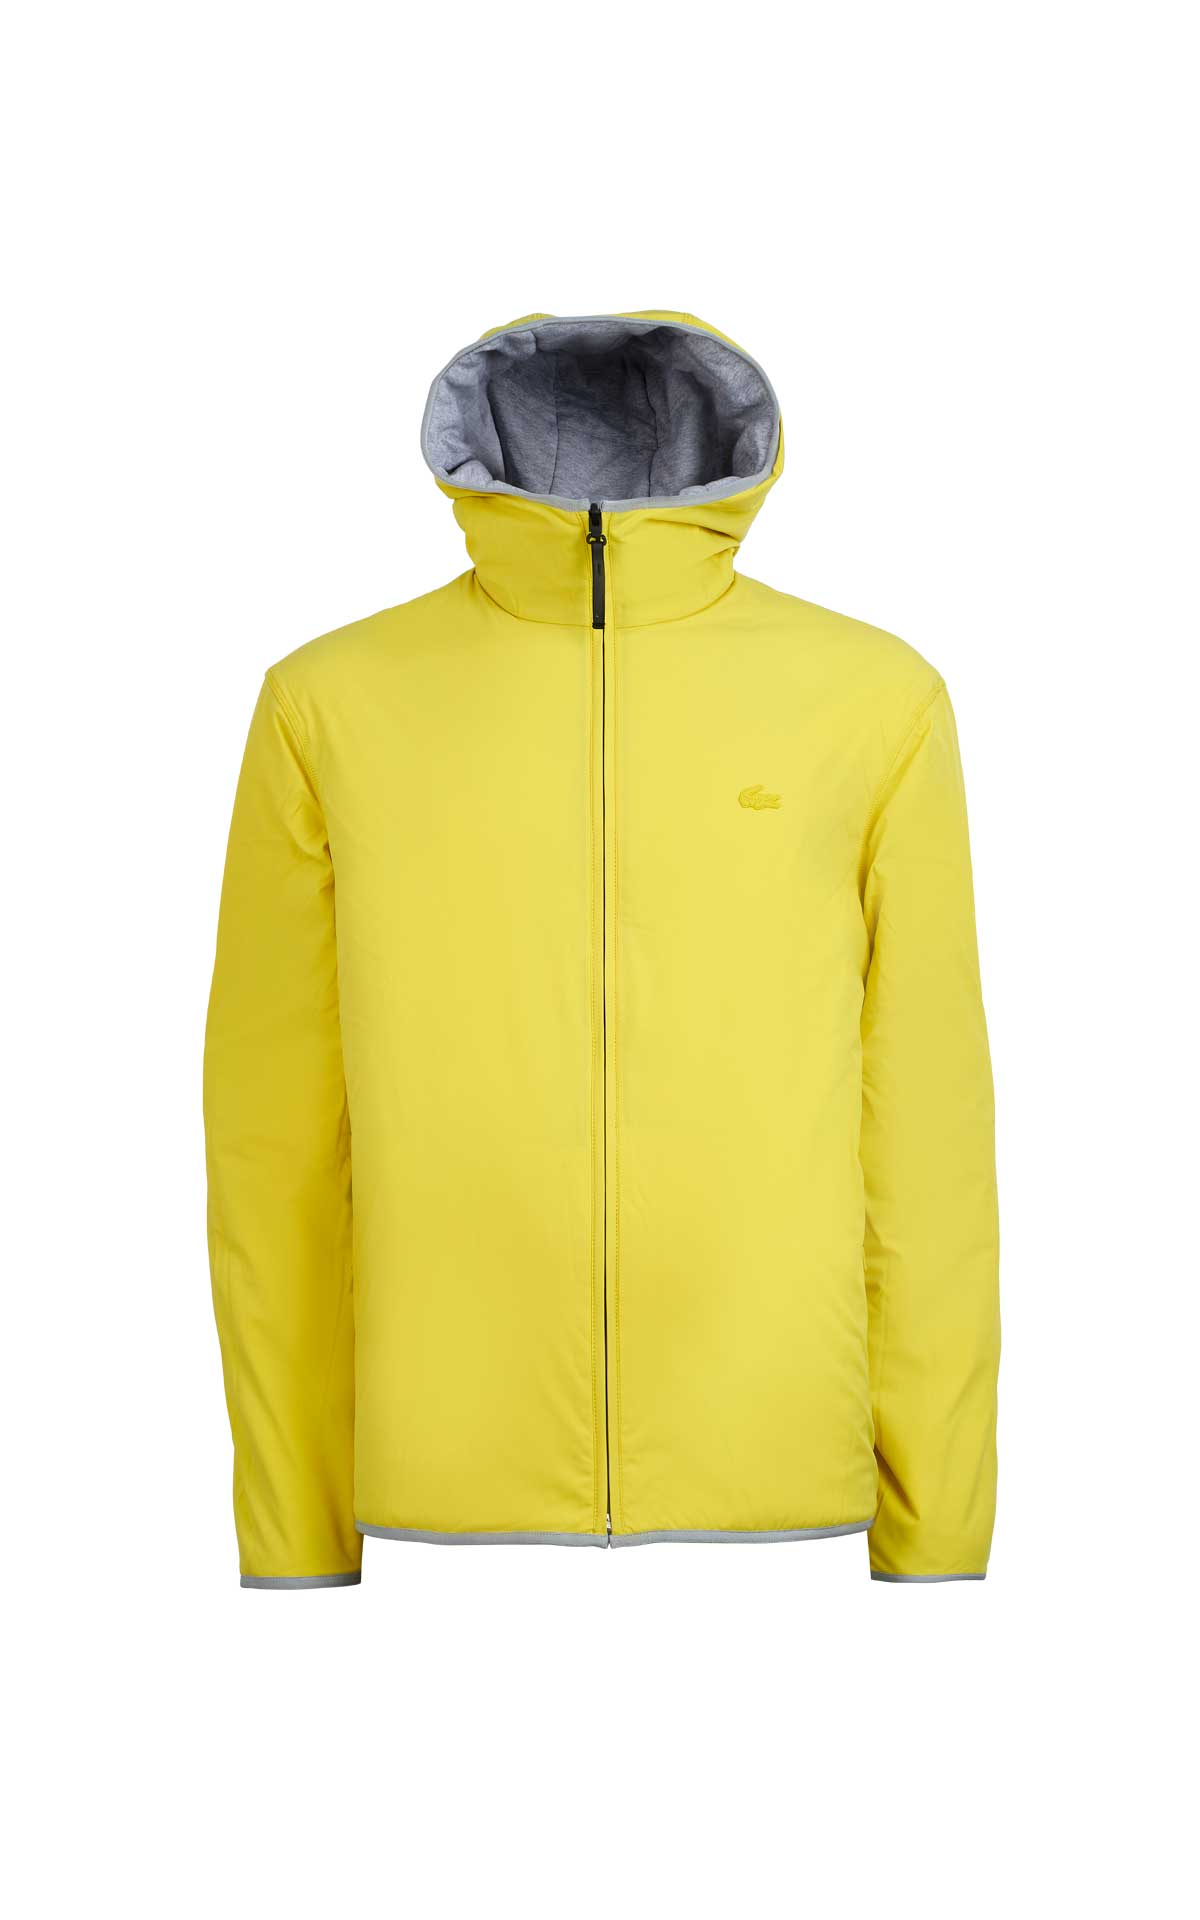 Yellow and grey reversible jacket Lacoste